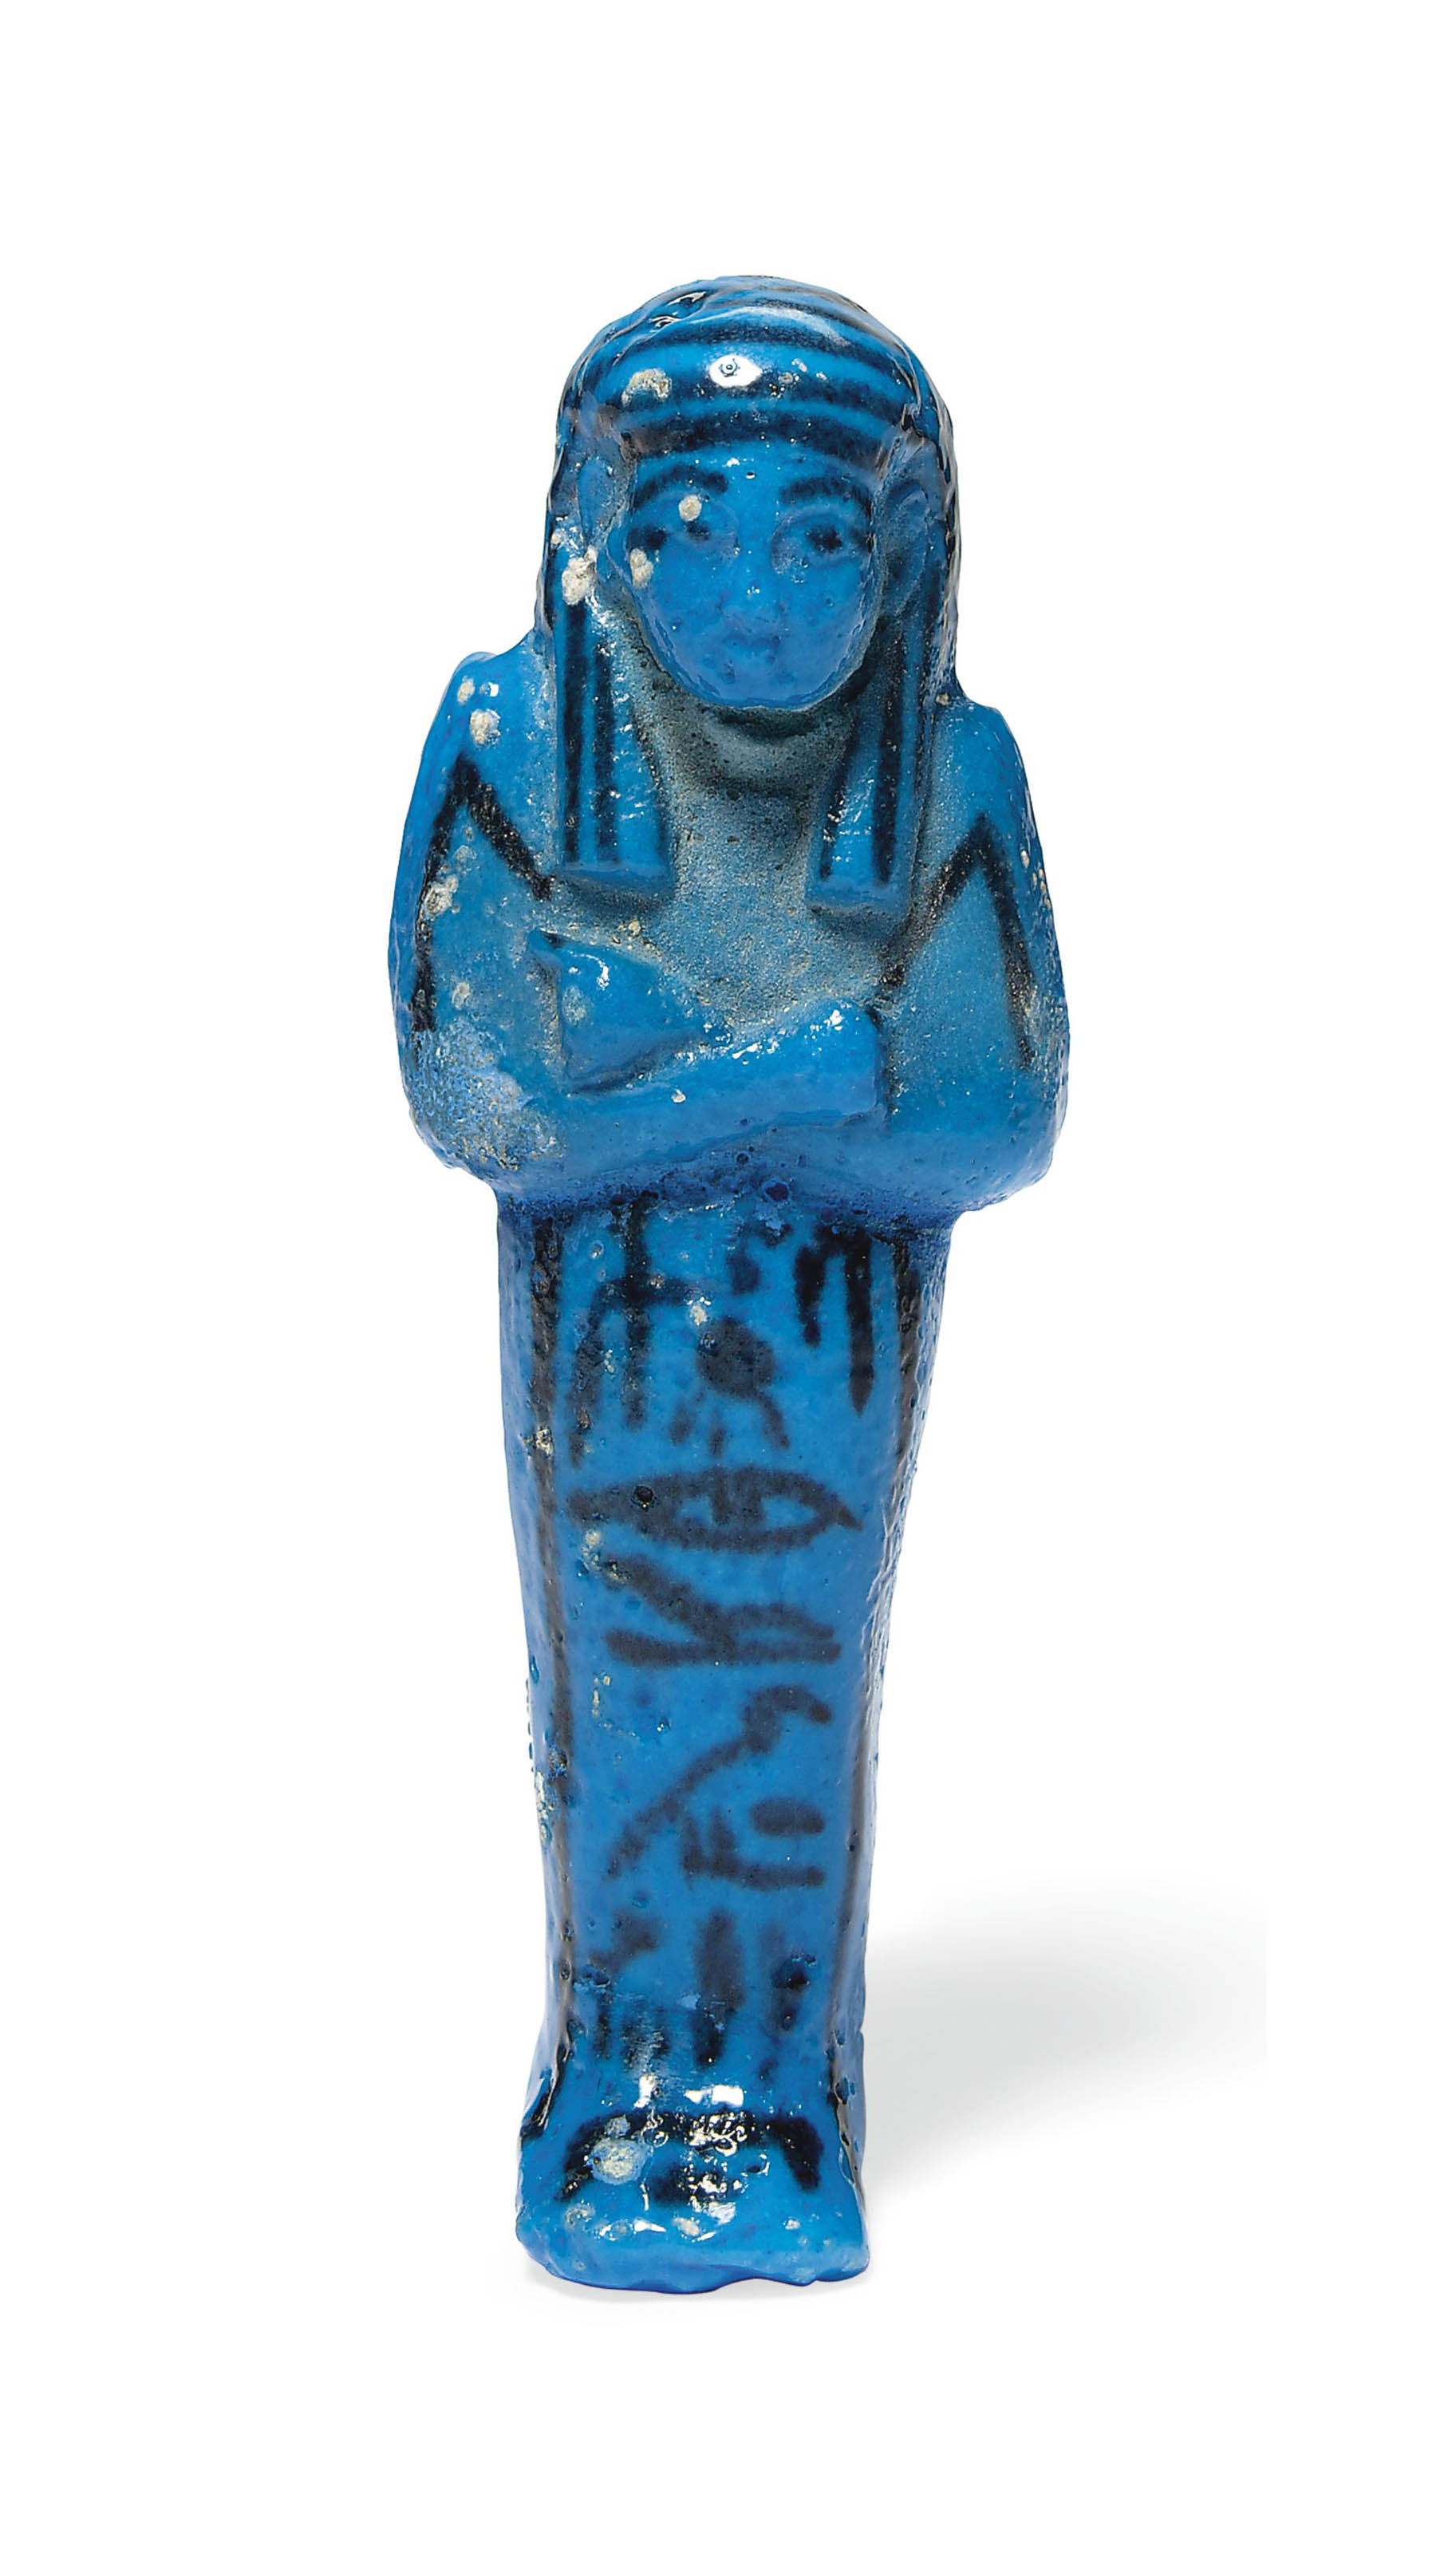 AN EGYPTIAN BRIGHT BLUE FAIENCE SHABTI FOR TAYUHERET